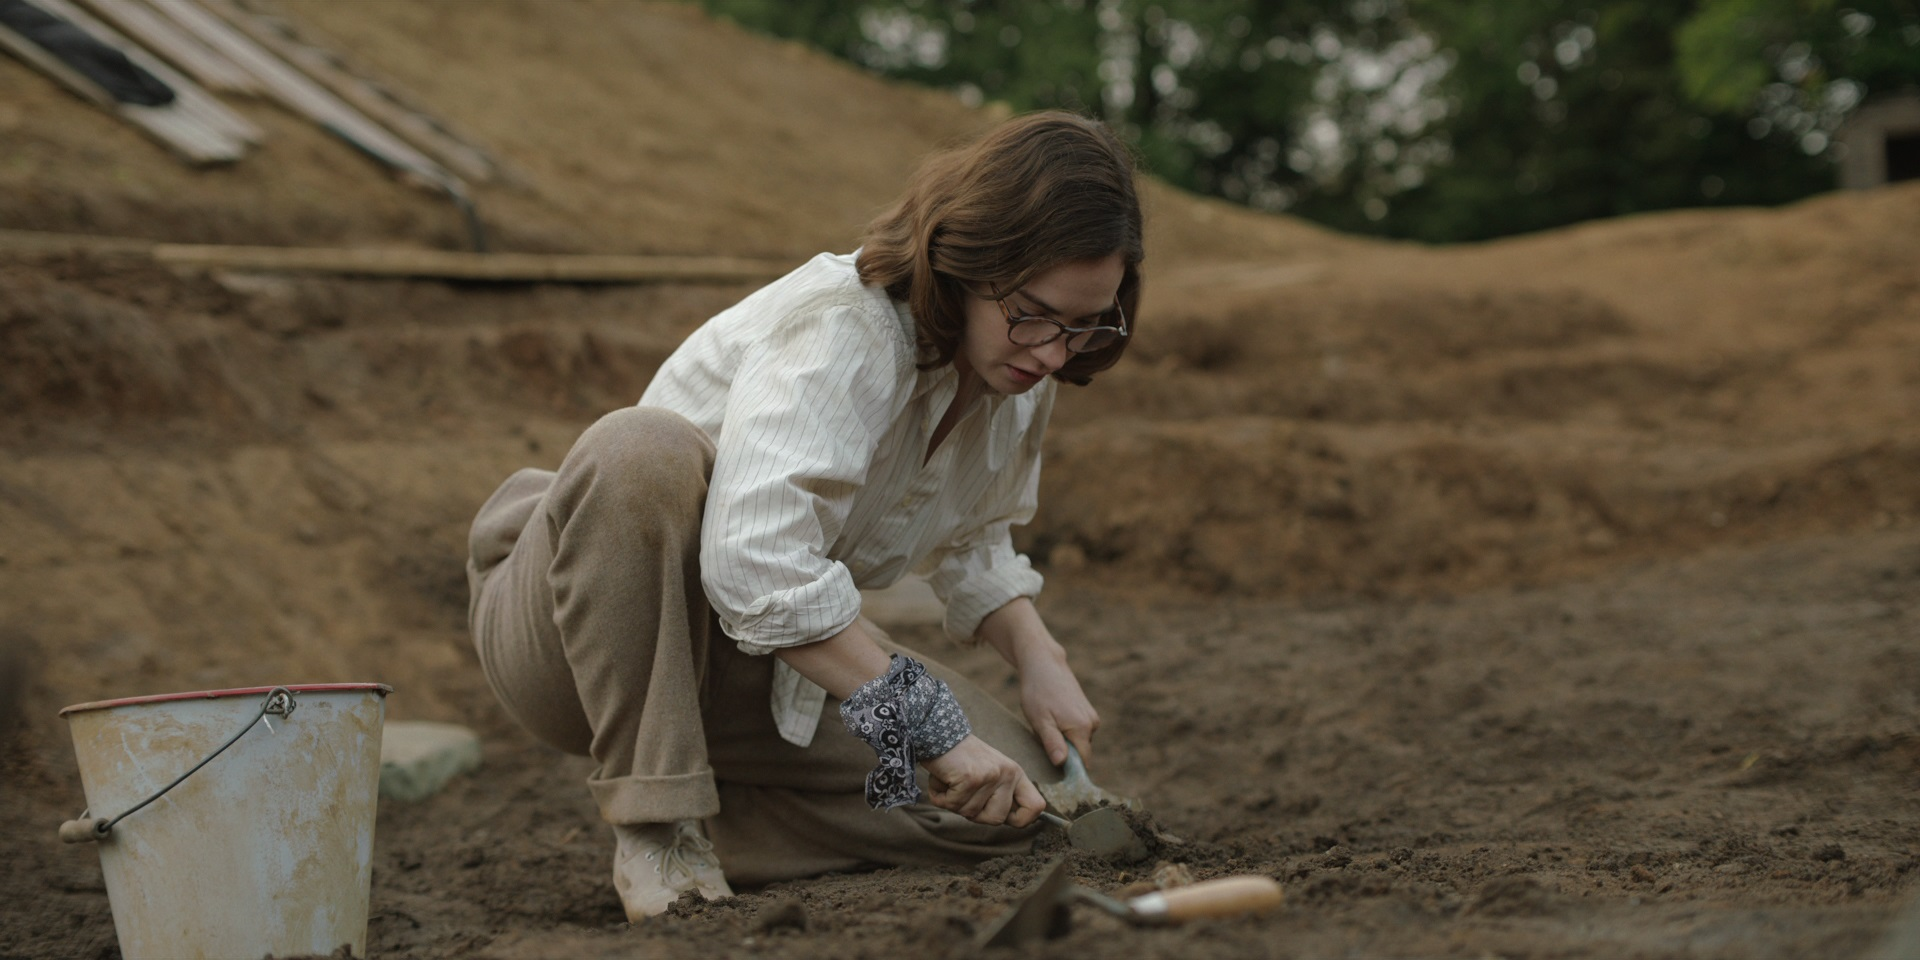 Still from the film of Lily James as Peggy Piggot excavating. She wears  a white shirt, brown trousers and white pilmsolls. She holds a trowel  and has a metal bucket next to her.